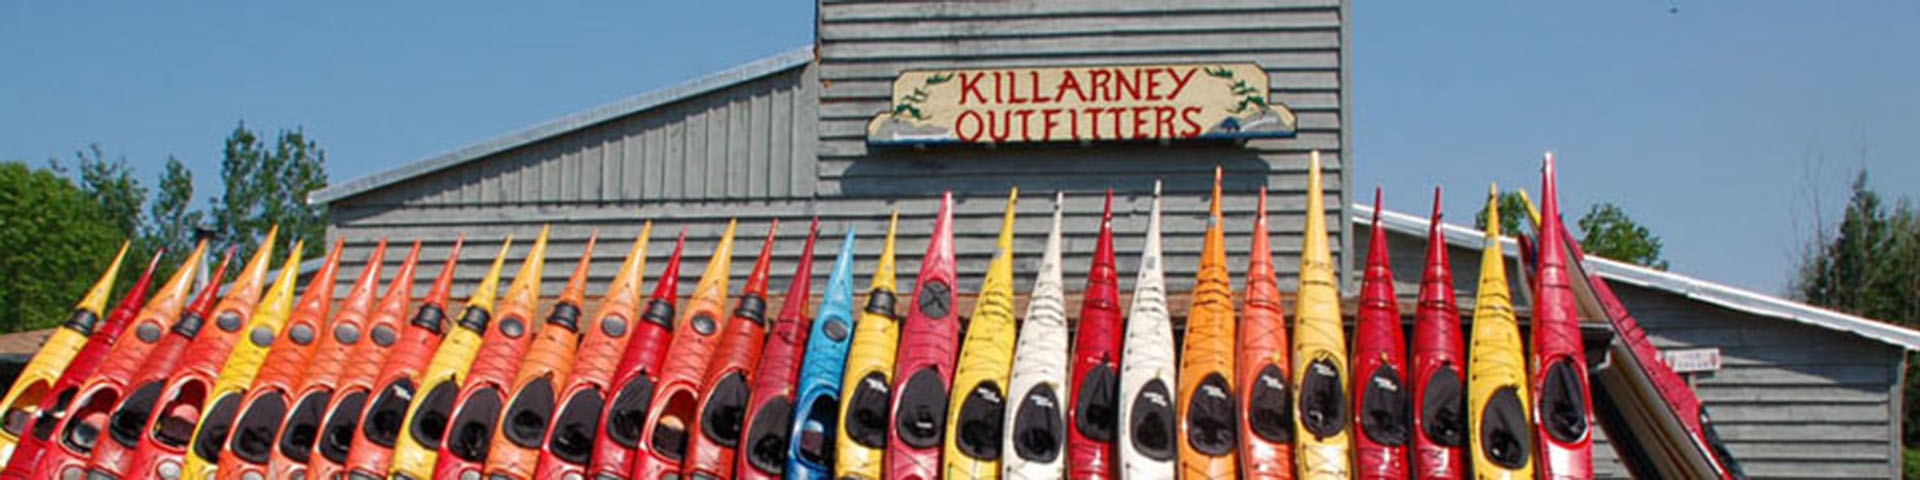 Expedition Sea Kayak Rental by Killarney Outfitters - Image 139